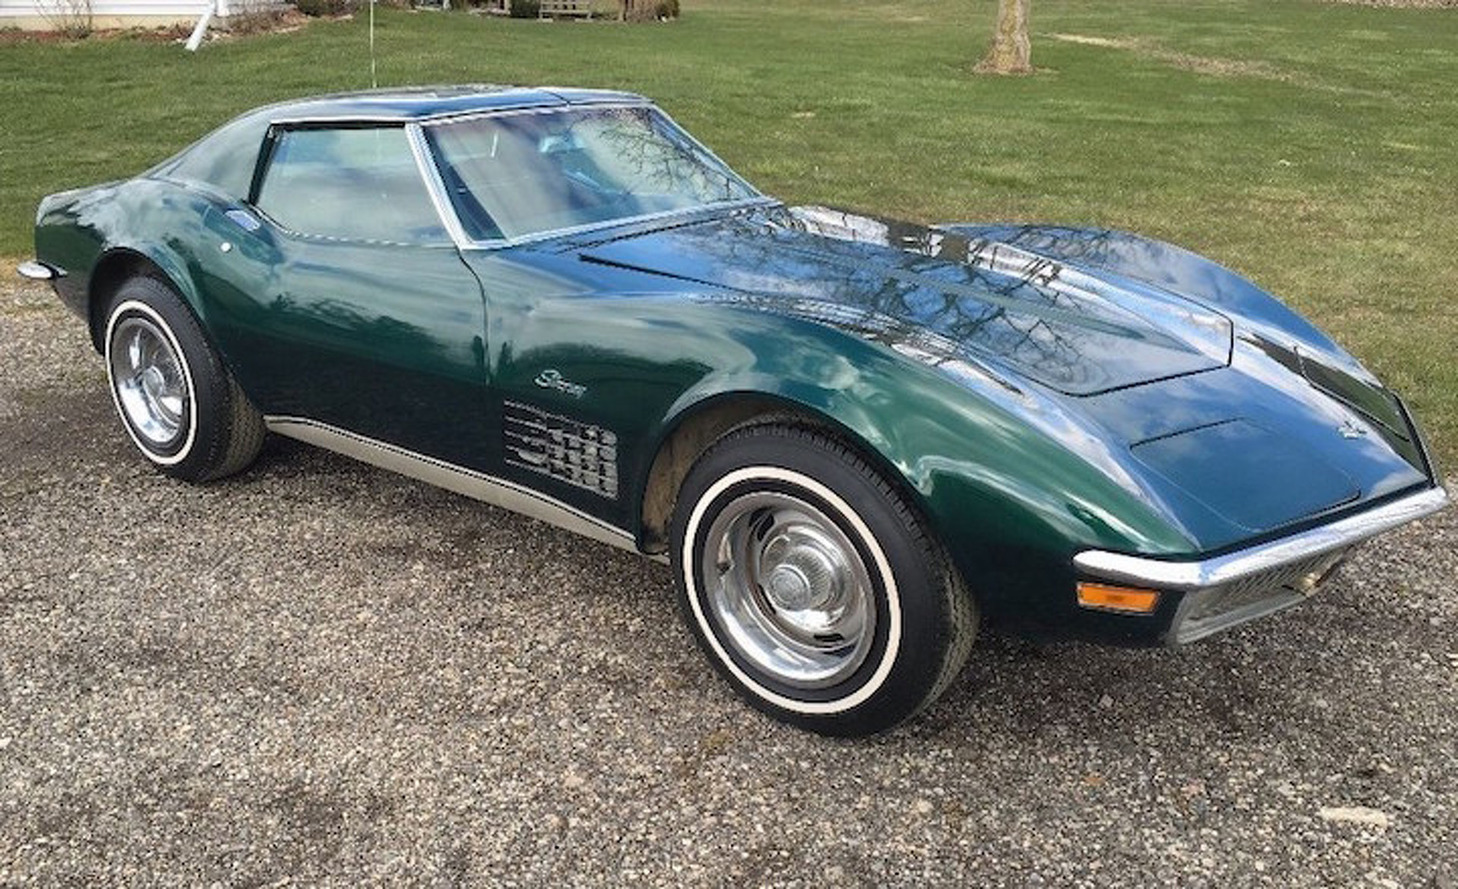 This 1971 Chevrolet Corvette Barn Find is Clean, Green, and On Ebay